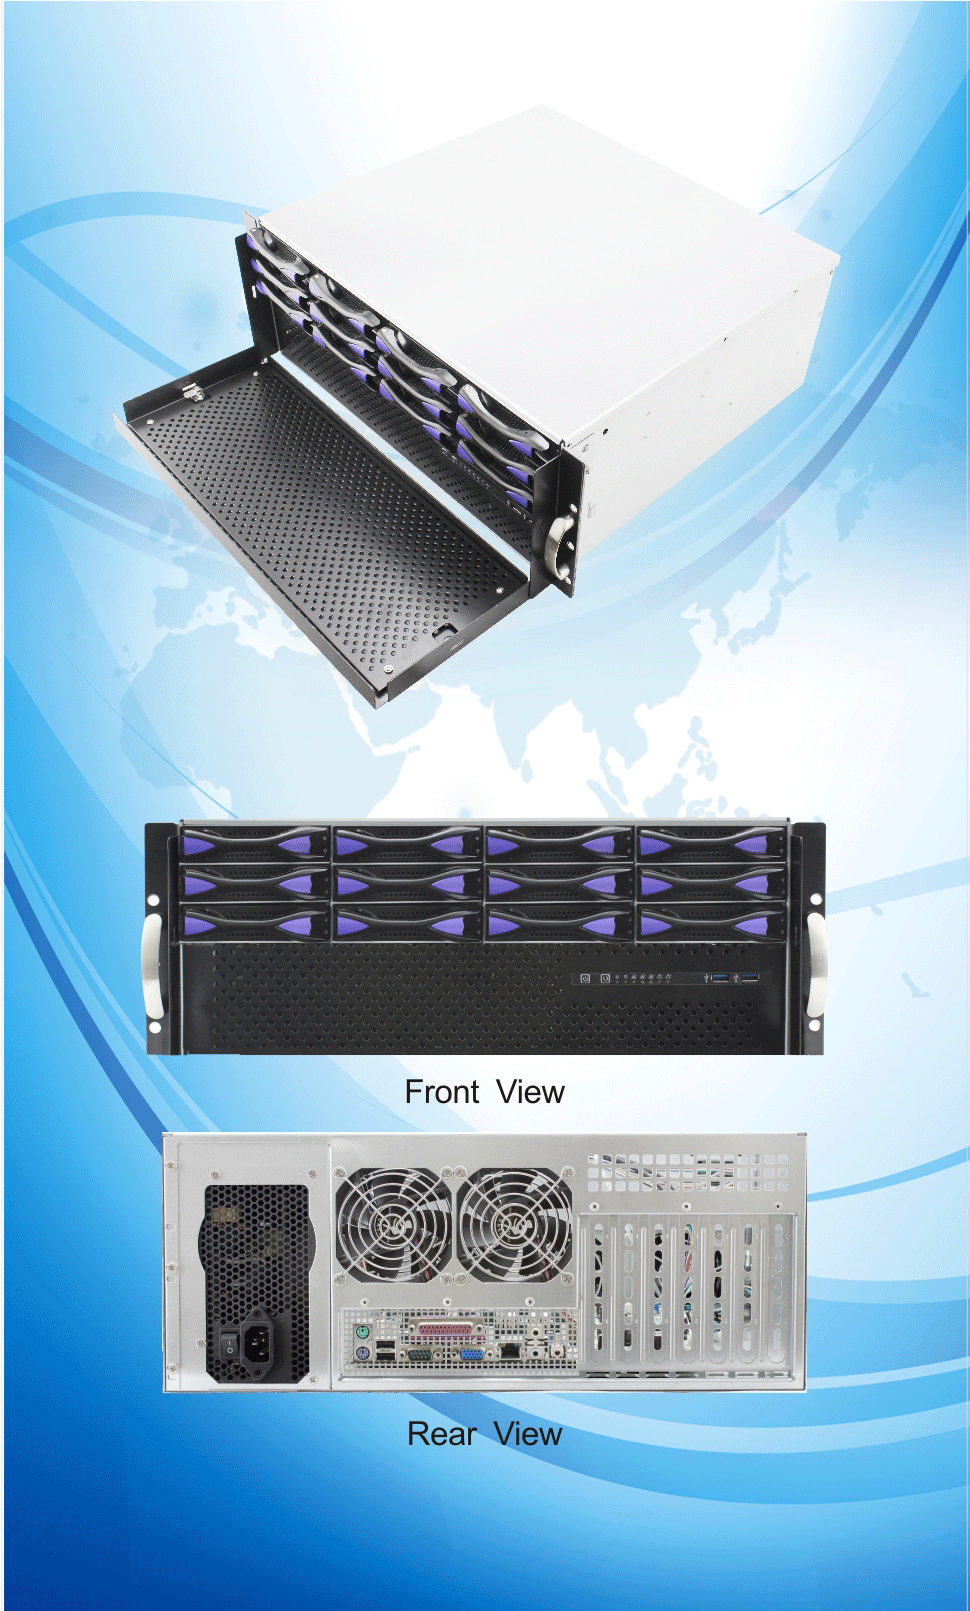 ED412H40 4u 12 bays 19 inch rack mount chassis mini server chassis